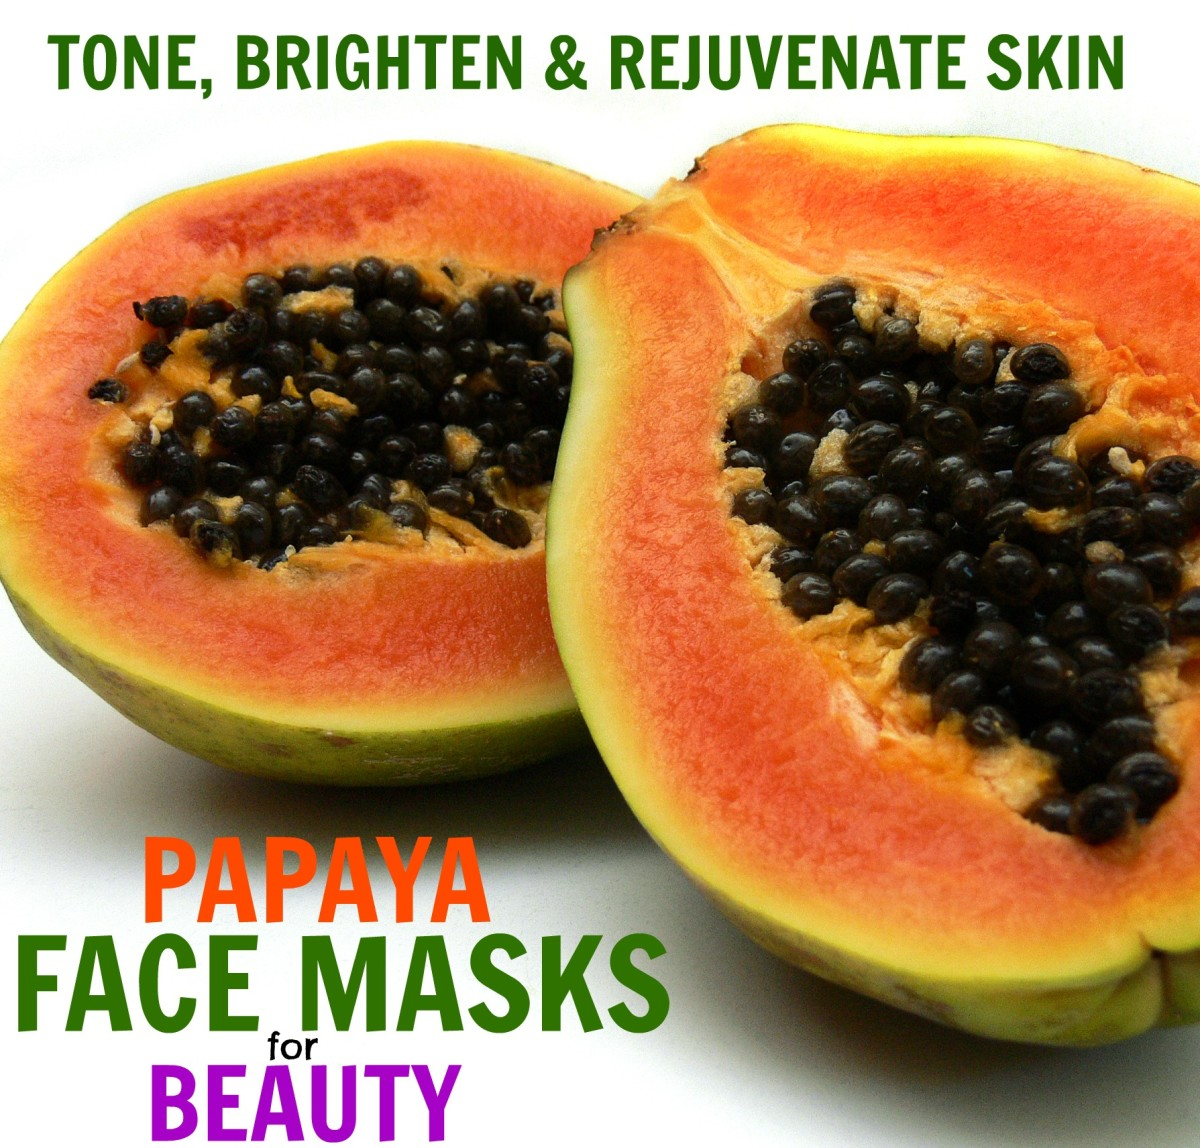 What are the best papaya face masks to use on skin for rejuvenating and skin brightening qualities?